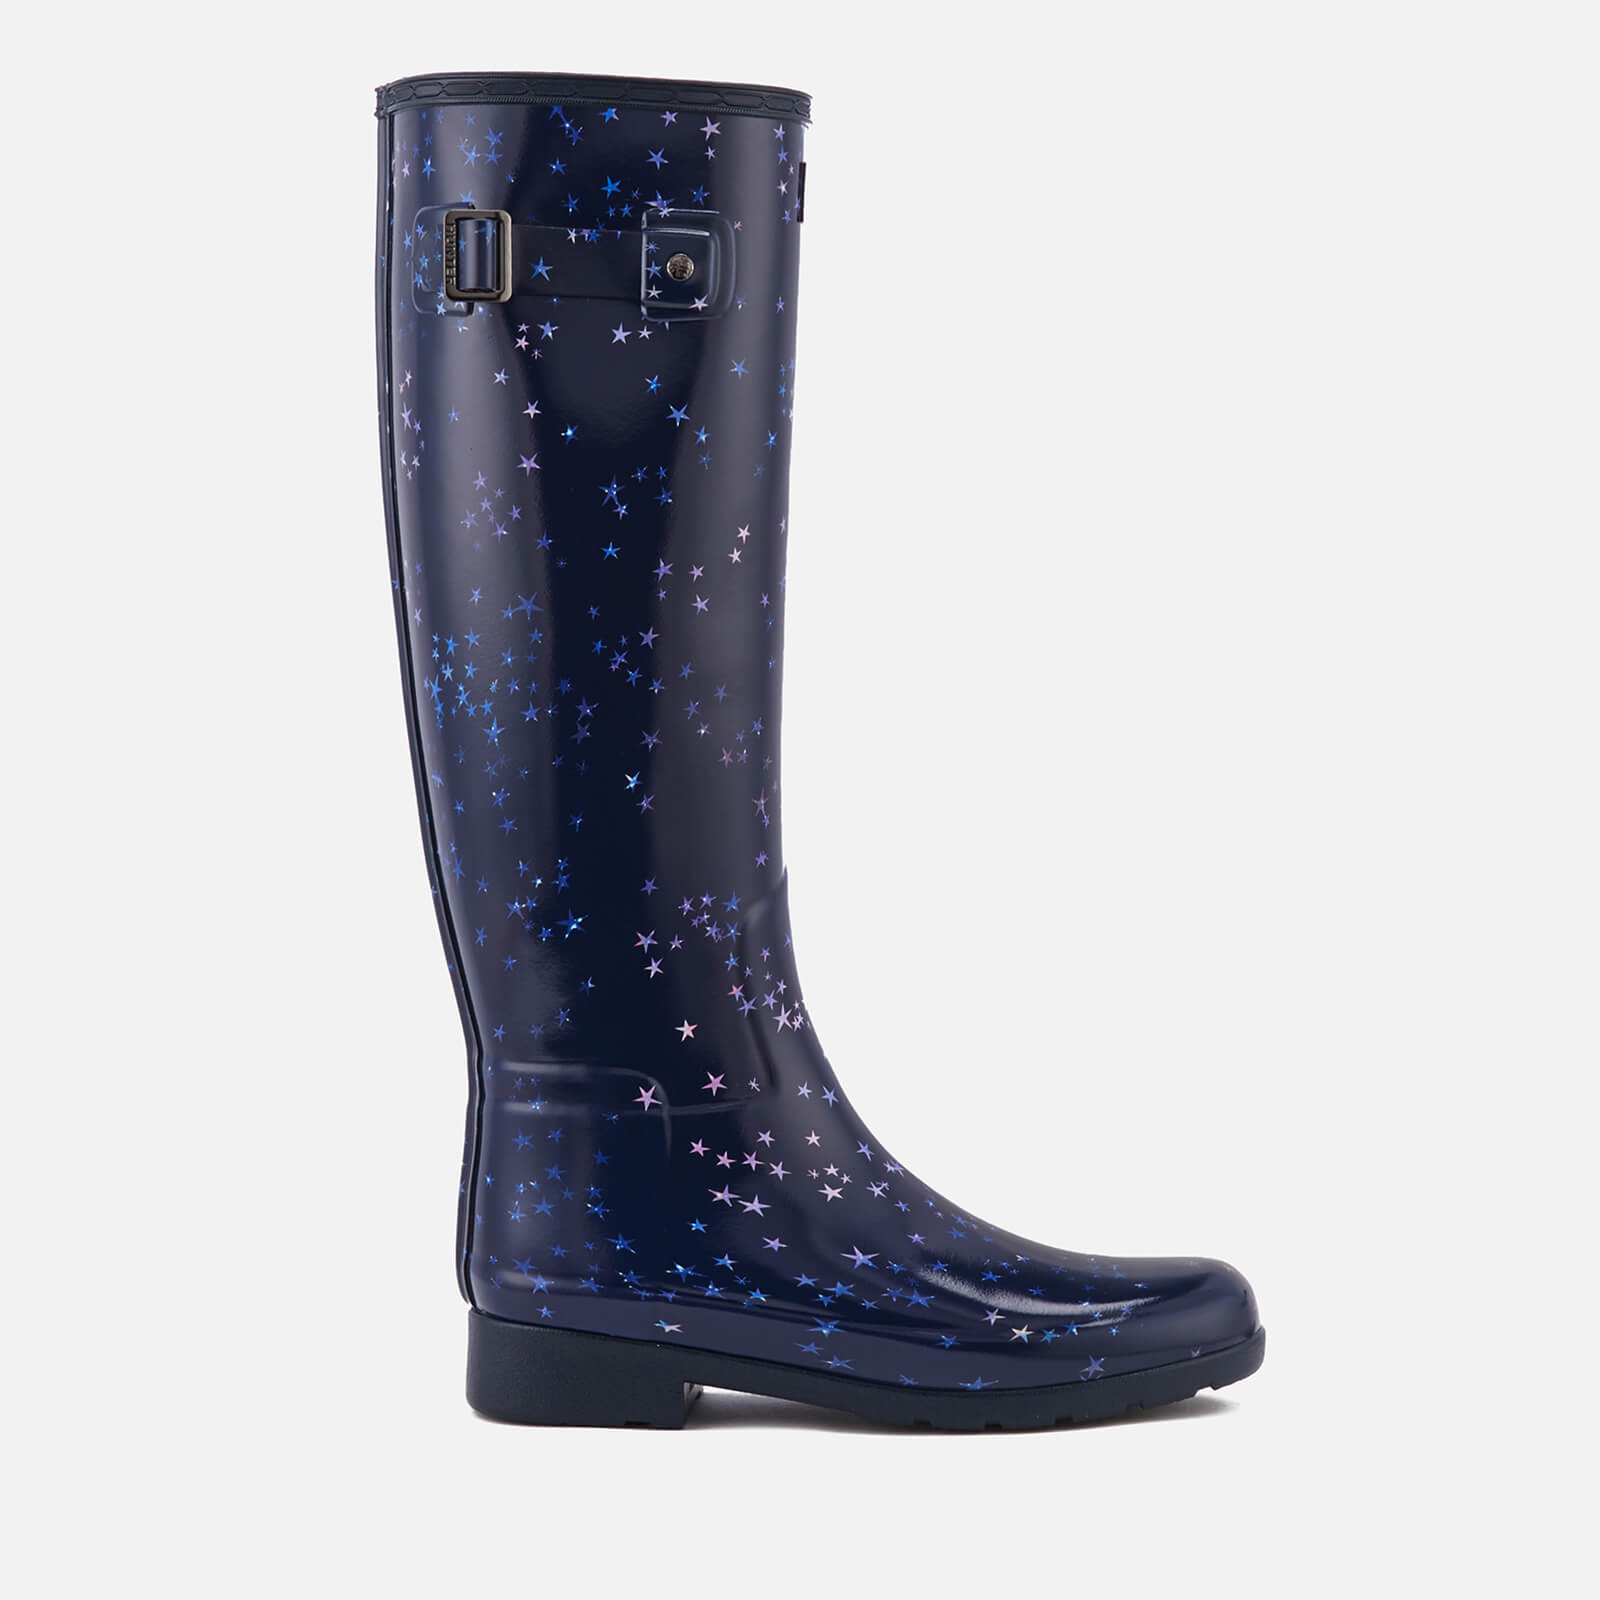 401a91d49de Hunter Women s Refined Constellation Print Tall Wellies - Midnight - Free  UK Delivery over £50